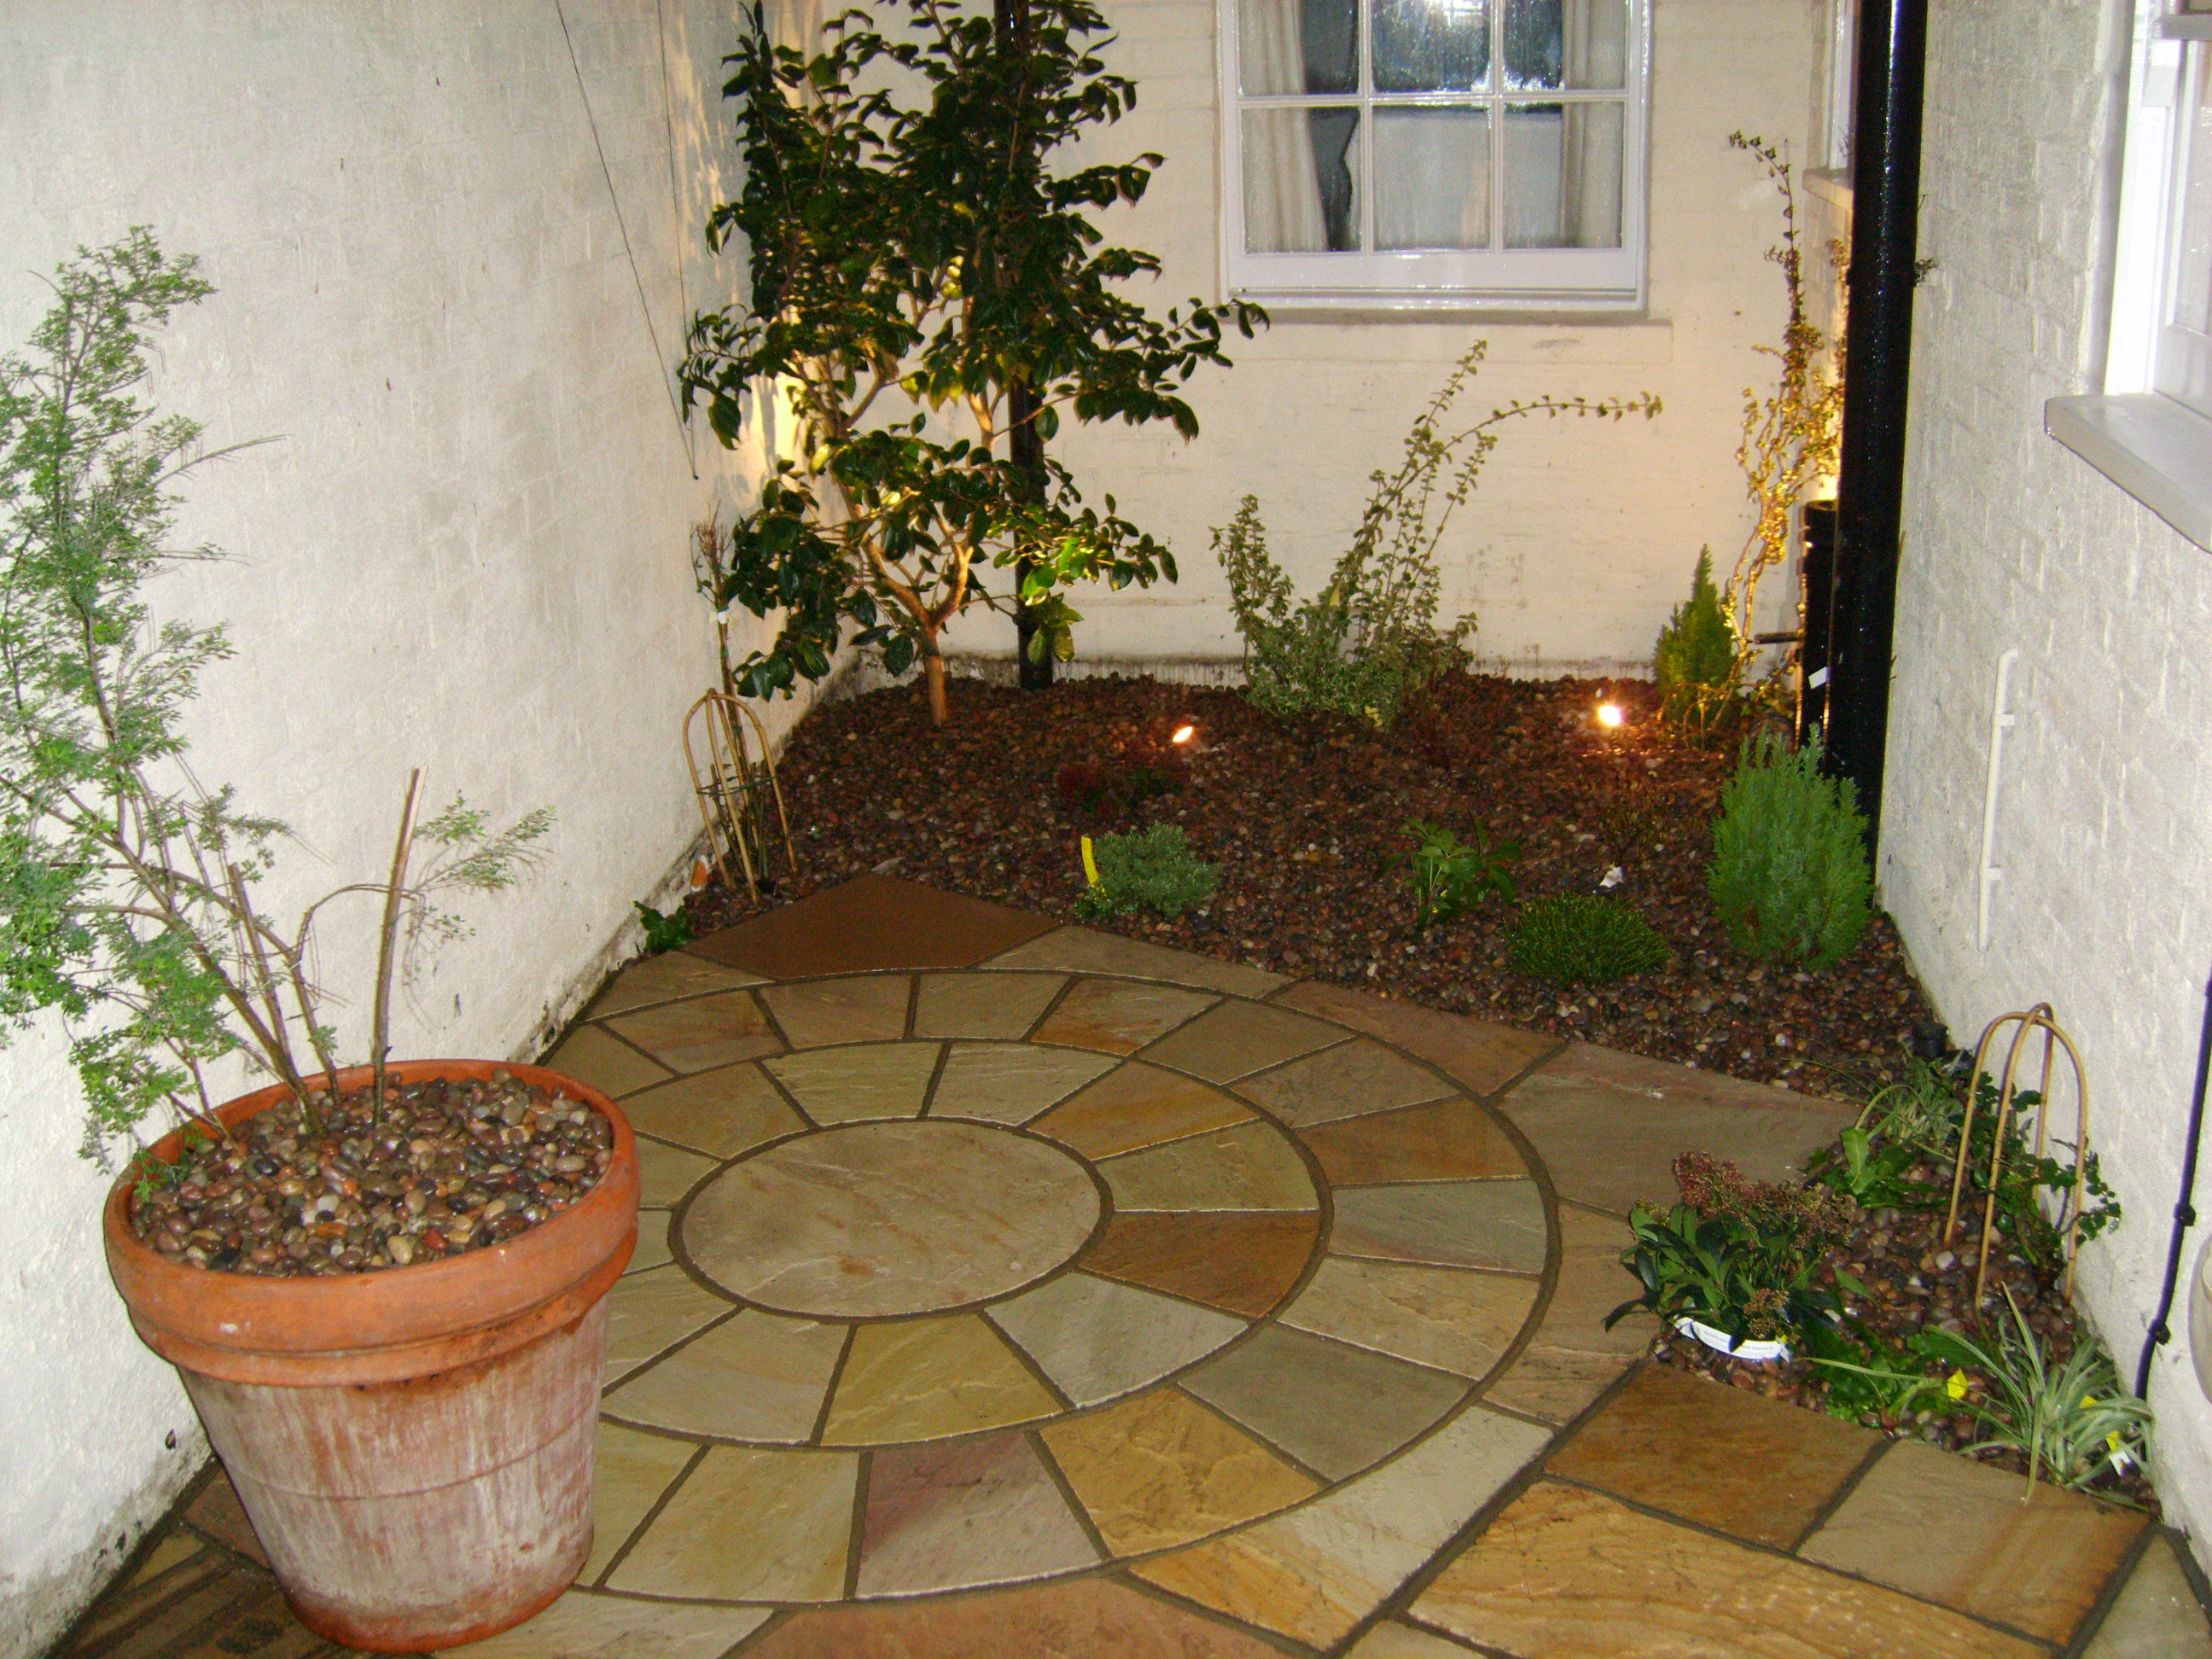 Tiny courtyard floral hardy london uk for Very small courtyard ideas